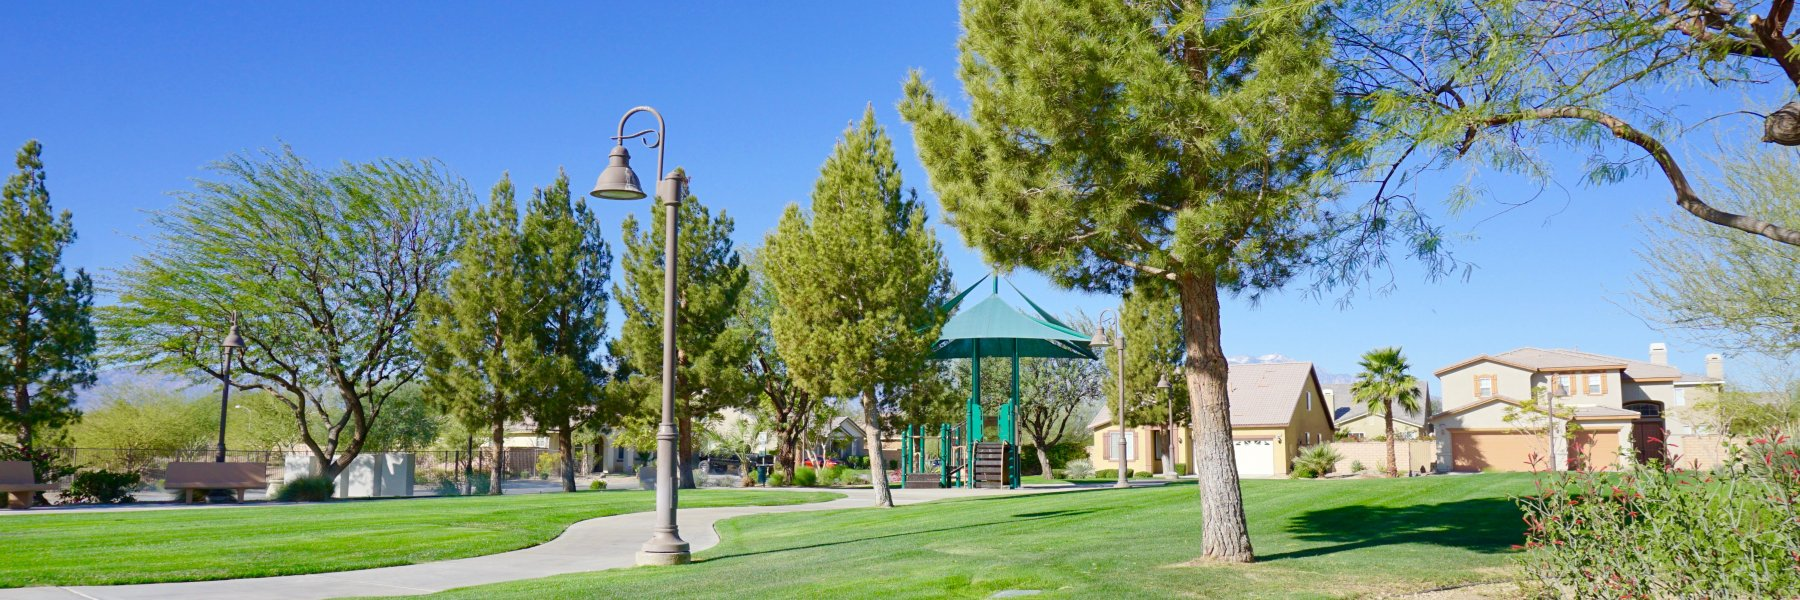 Talavera is a community of homes in Indio California